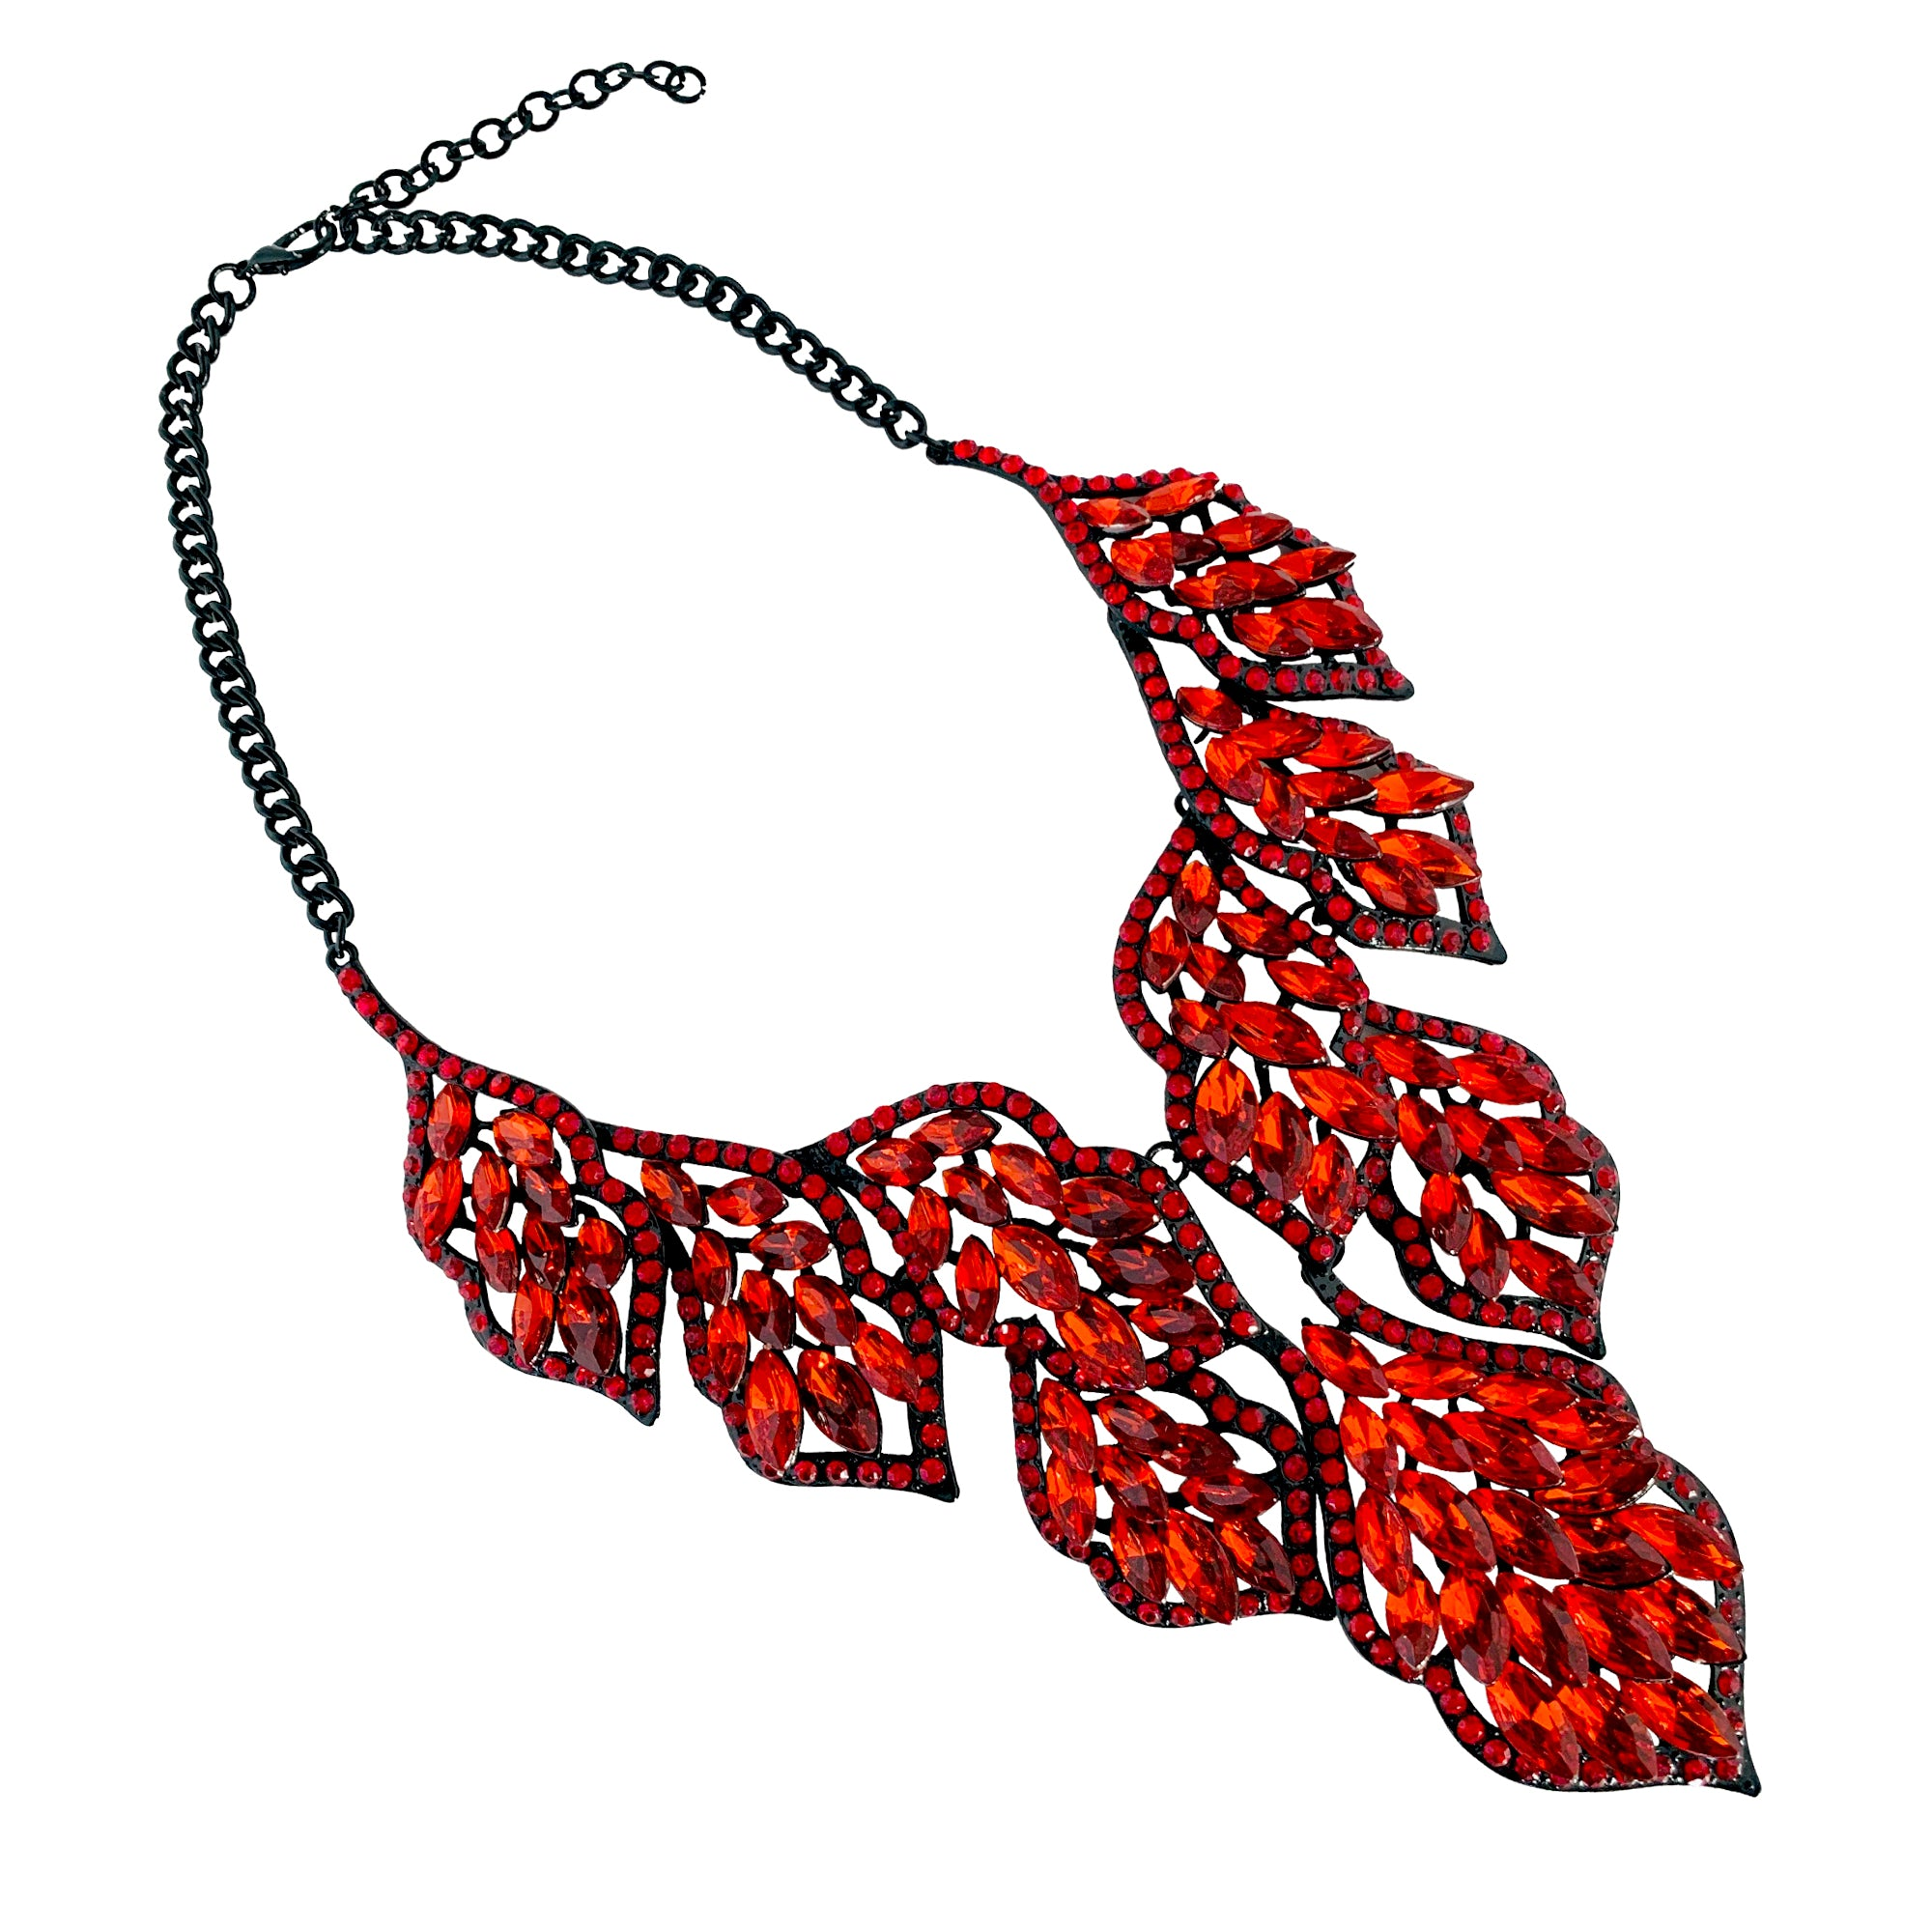 The Harietta Necklace